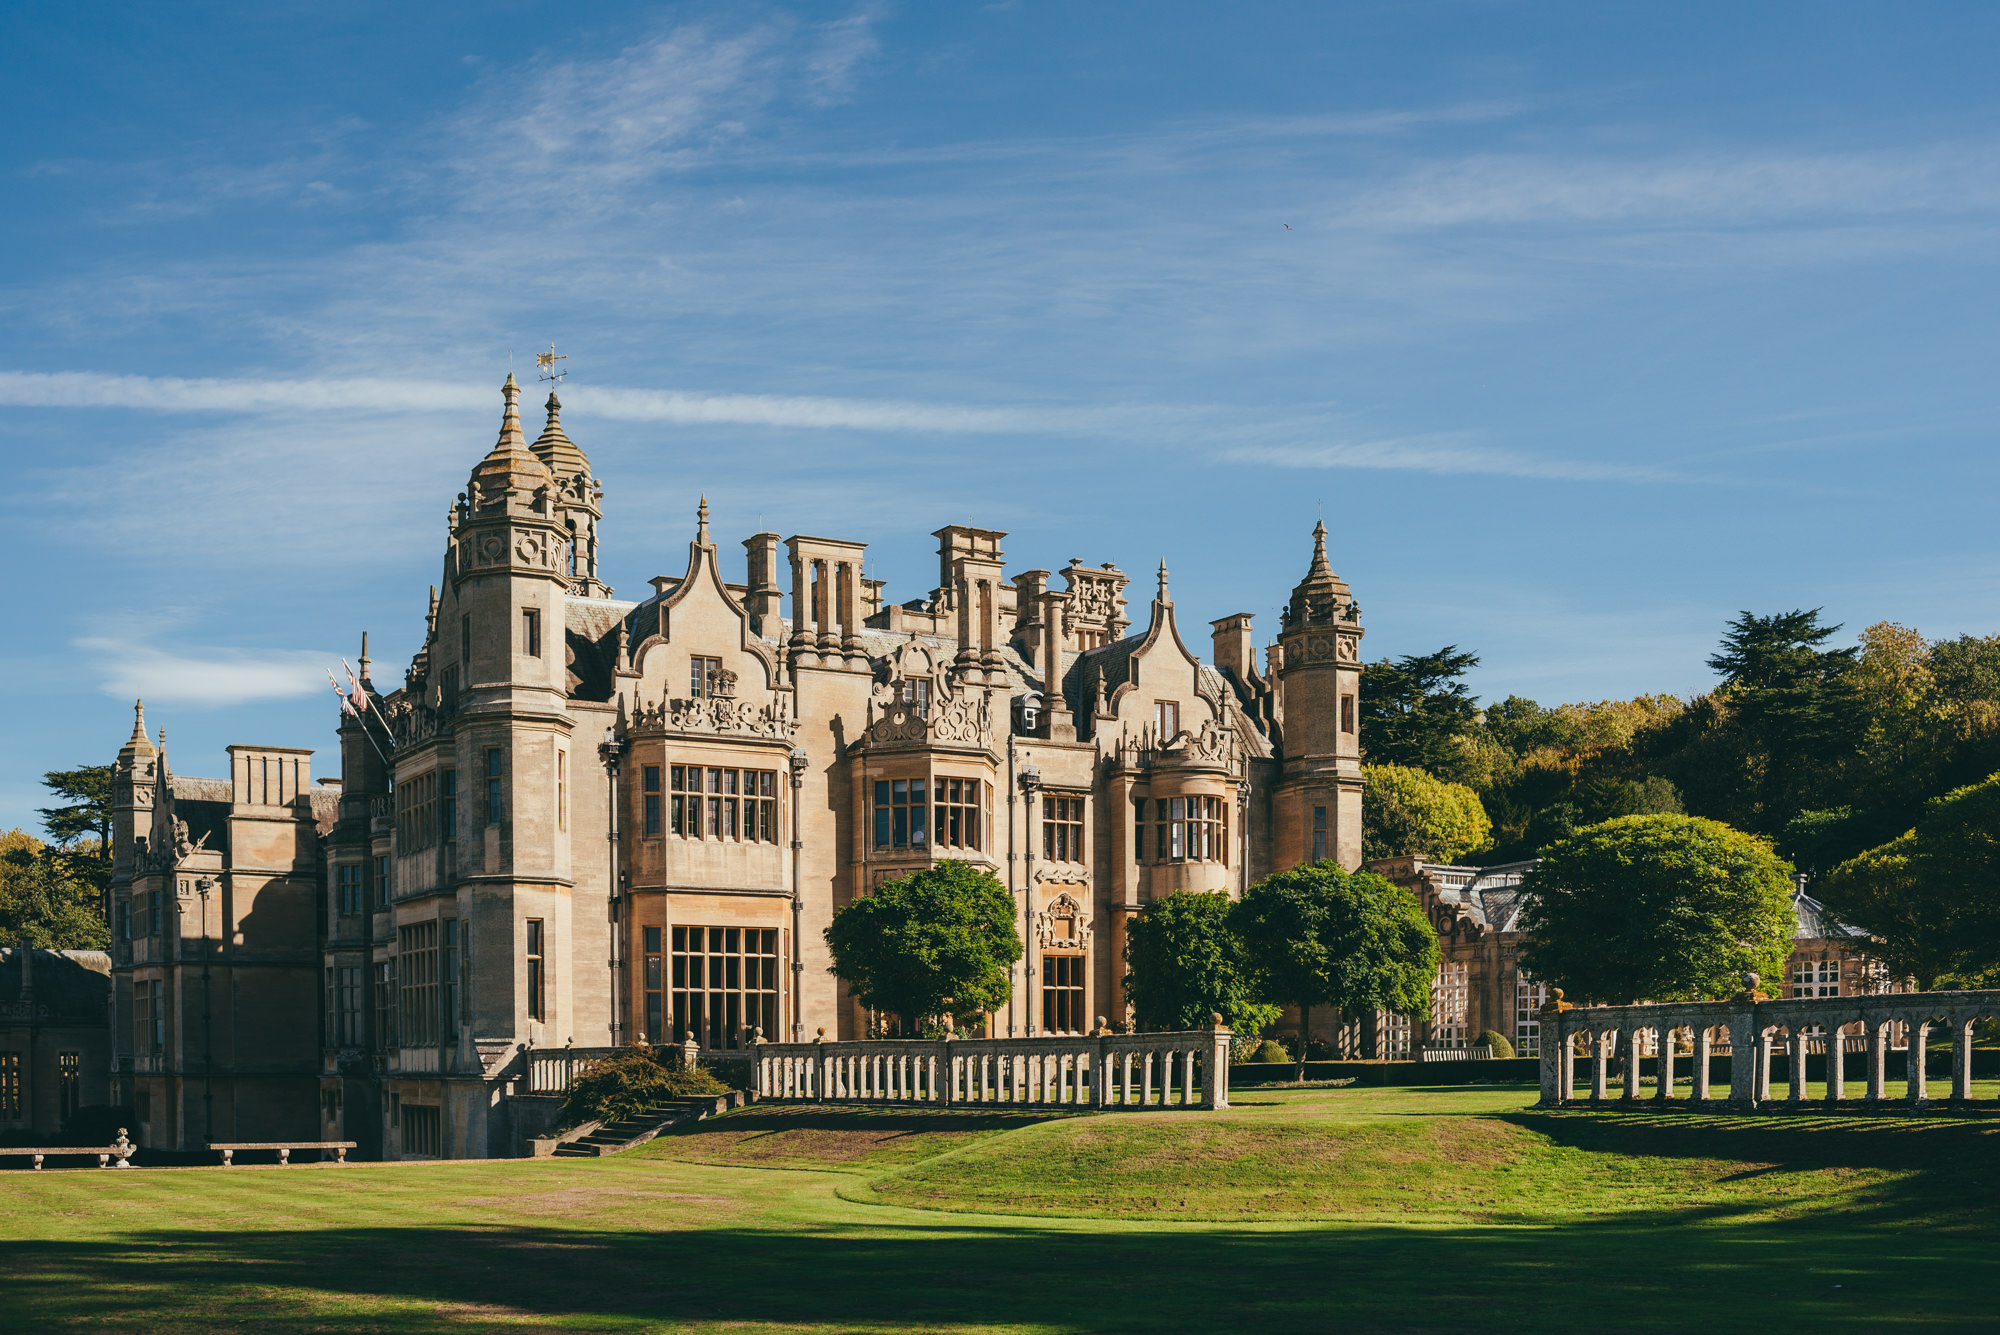 Rear view of harlaxton manor in the sunshine